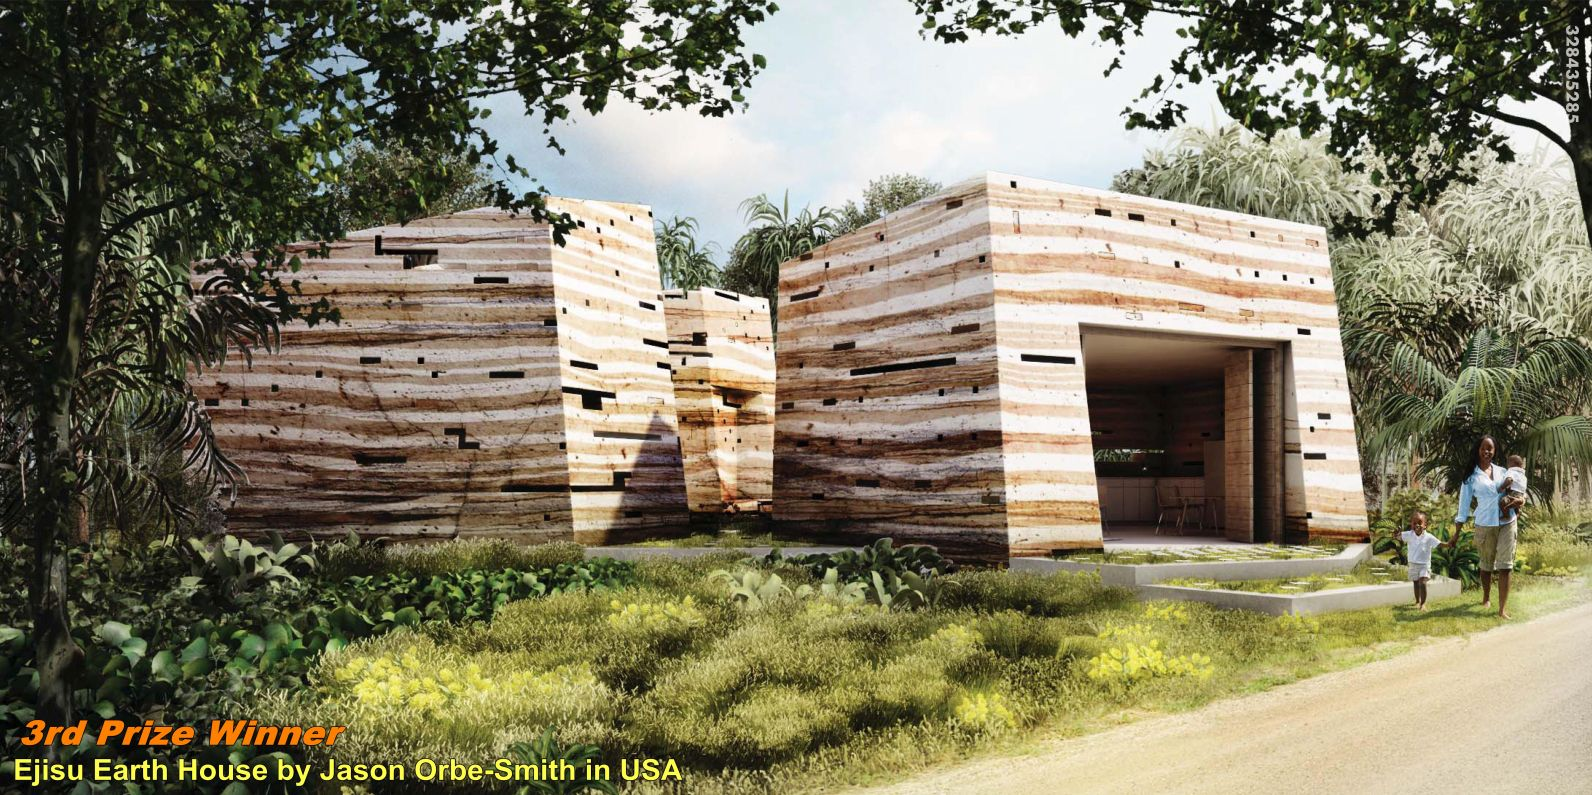 Nka foundation announces the winners of the mud house design 2014 competition for ghana